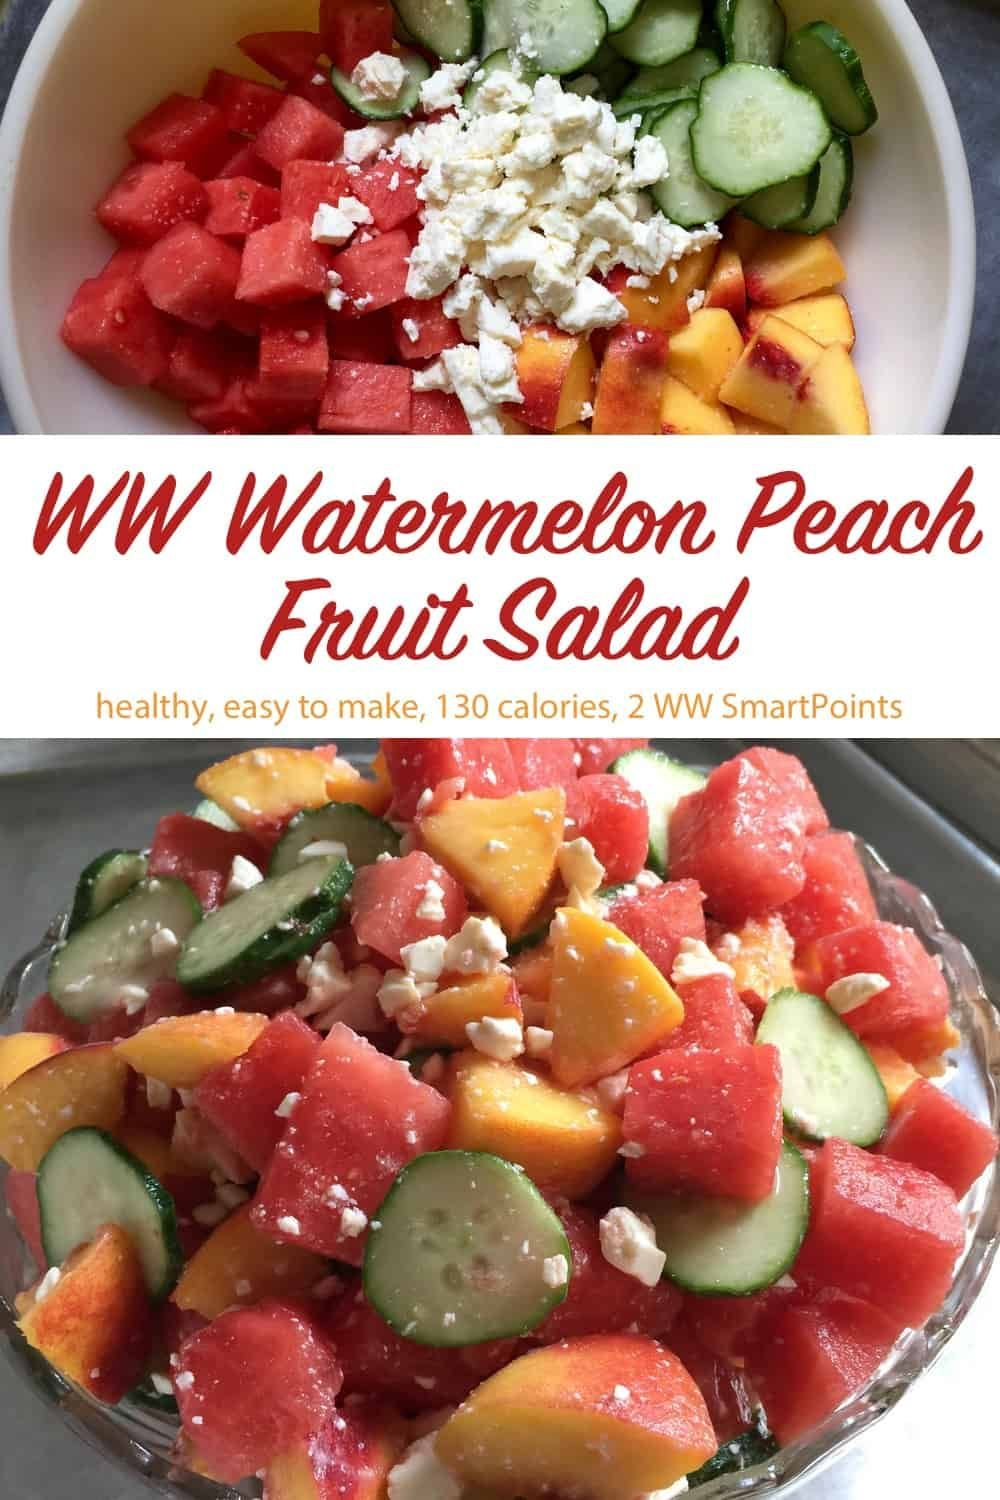 Fruit Salad with Watermelon & Peaches Chunks of juicy watermelon and fresh peaches, sliced cucumber and peaches tossed with vinegar or lemon juice and sprinkled with feta cheese makes for a light and refreshing Summertime Fruit Salad!Chunks of juicy watermelon and fresh peaches, sliced cucumber and peaches tossed with vine...